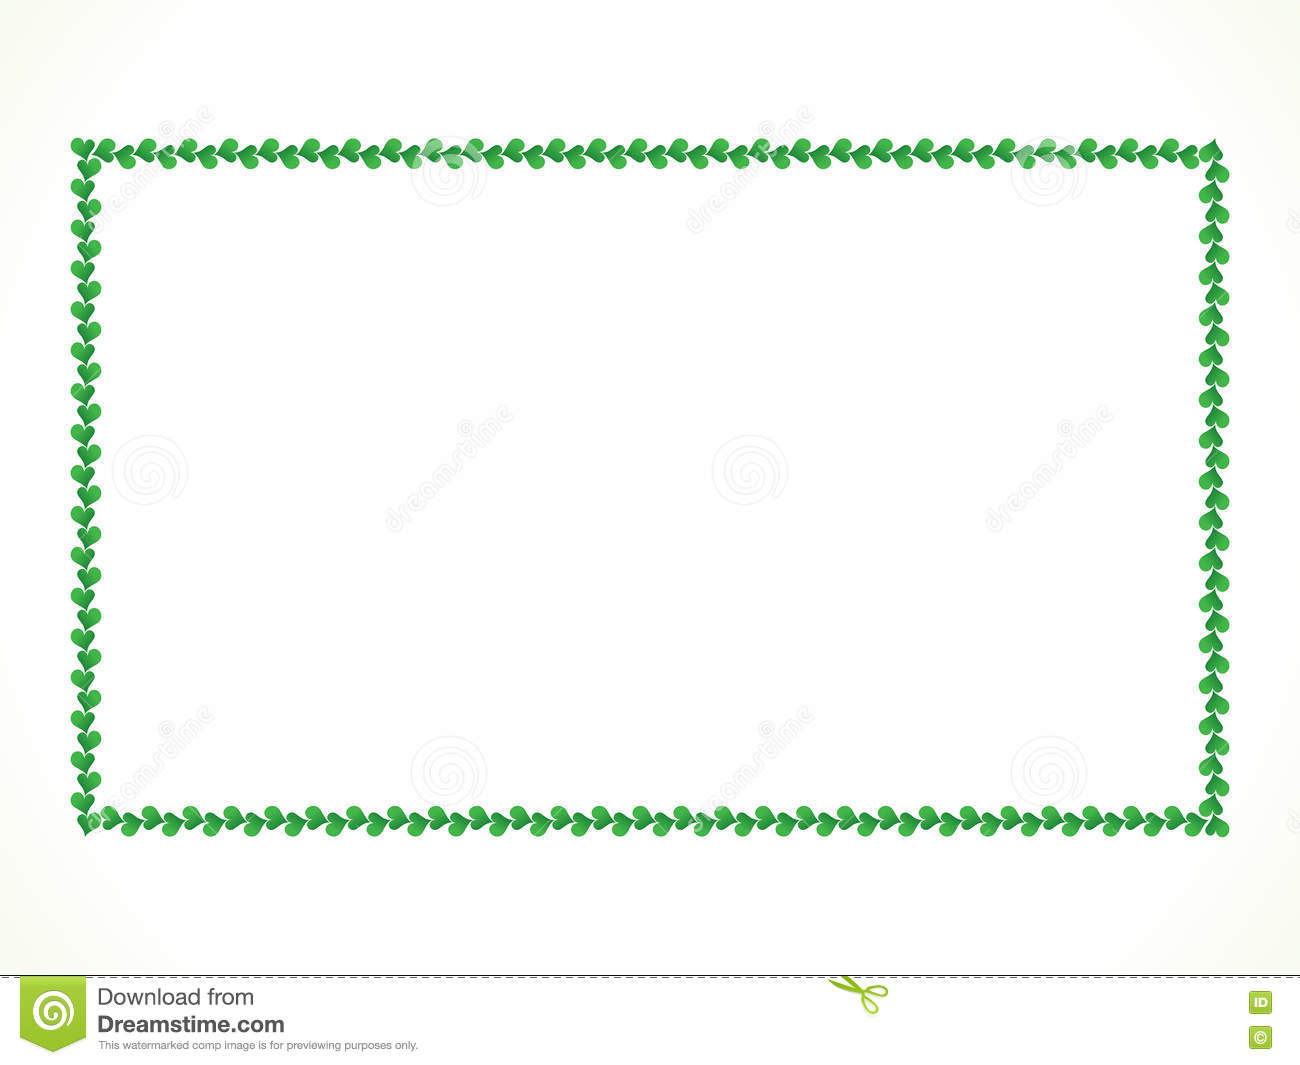 Abstract Artistic Green Heart Border Stock Vector - Image ...